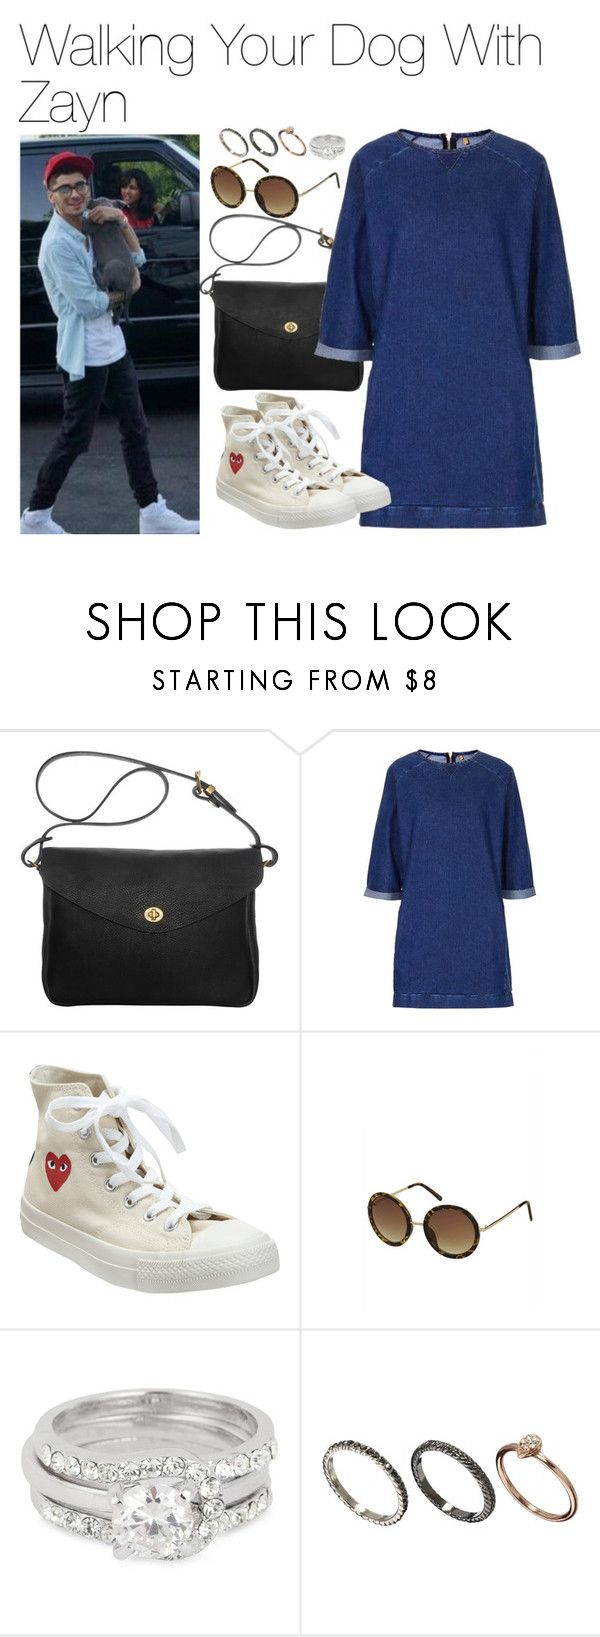 """""""Walking Your Dog With Zayn"""" by onedirectionimagineoutfits99 ❤ liked on Polyvore featuring Mimi Berry, Topshop, Converse, Jon Richard and Orelia"""